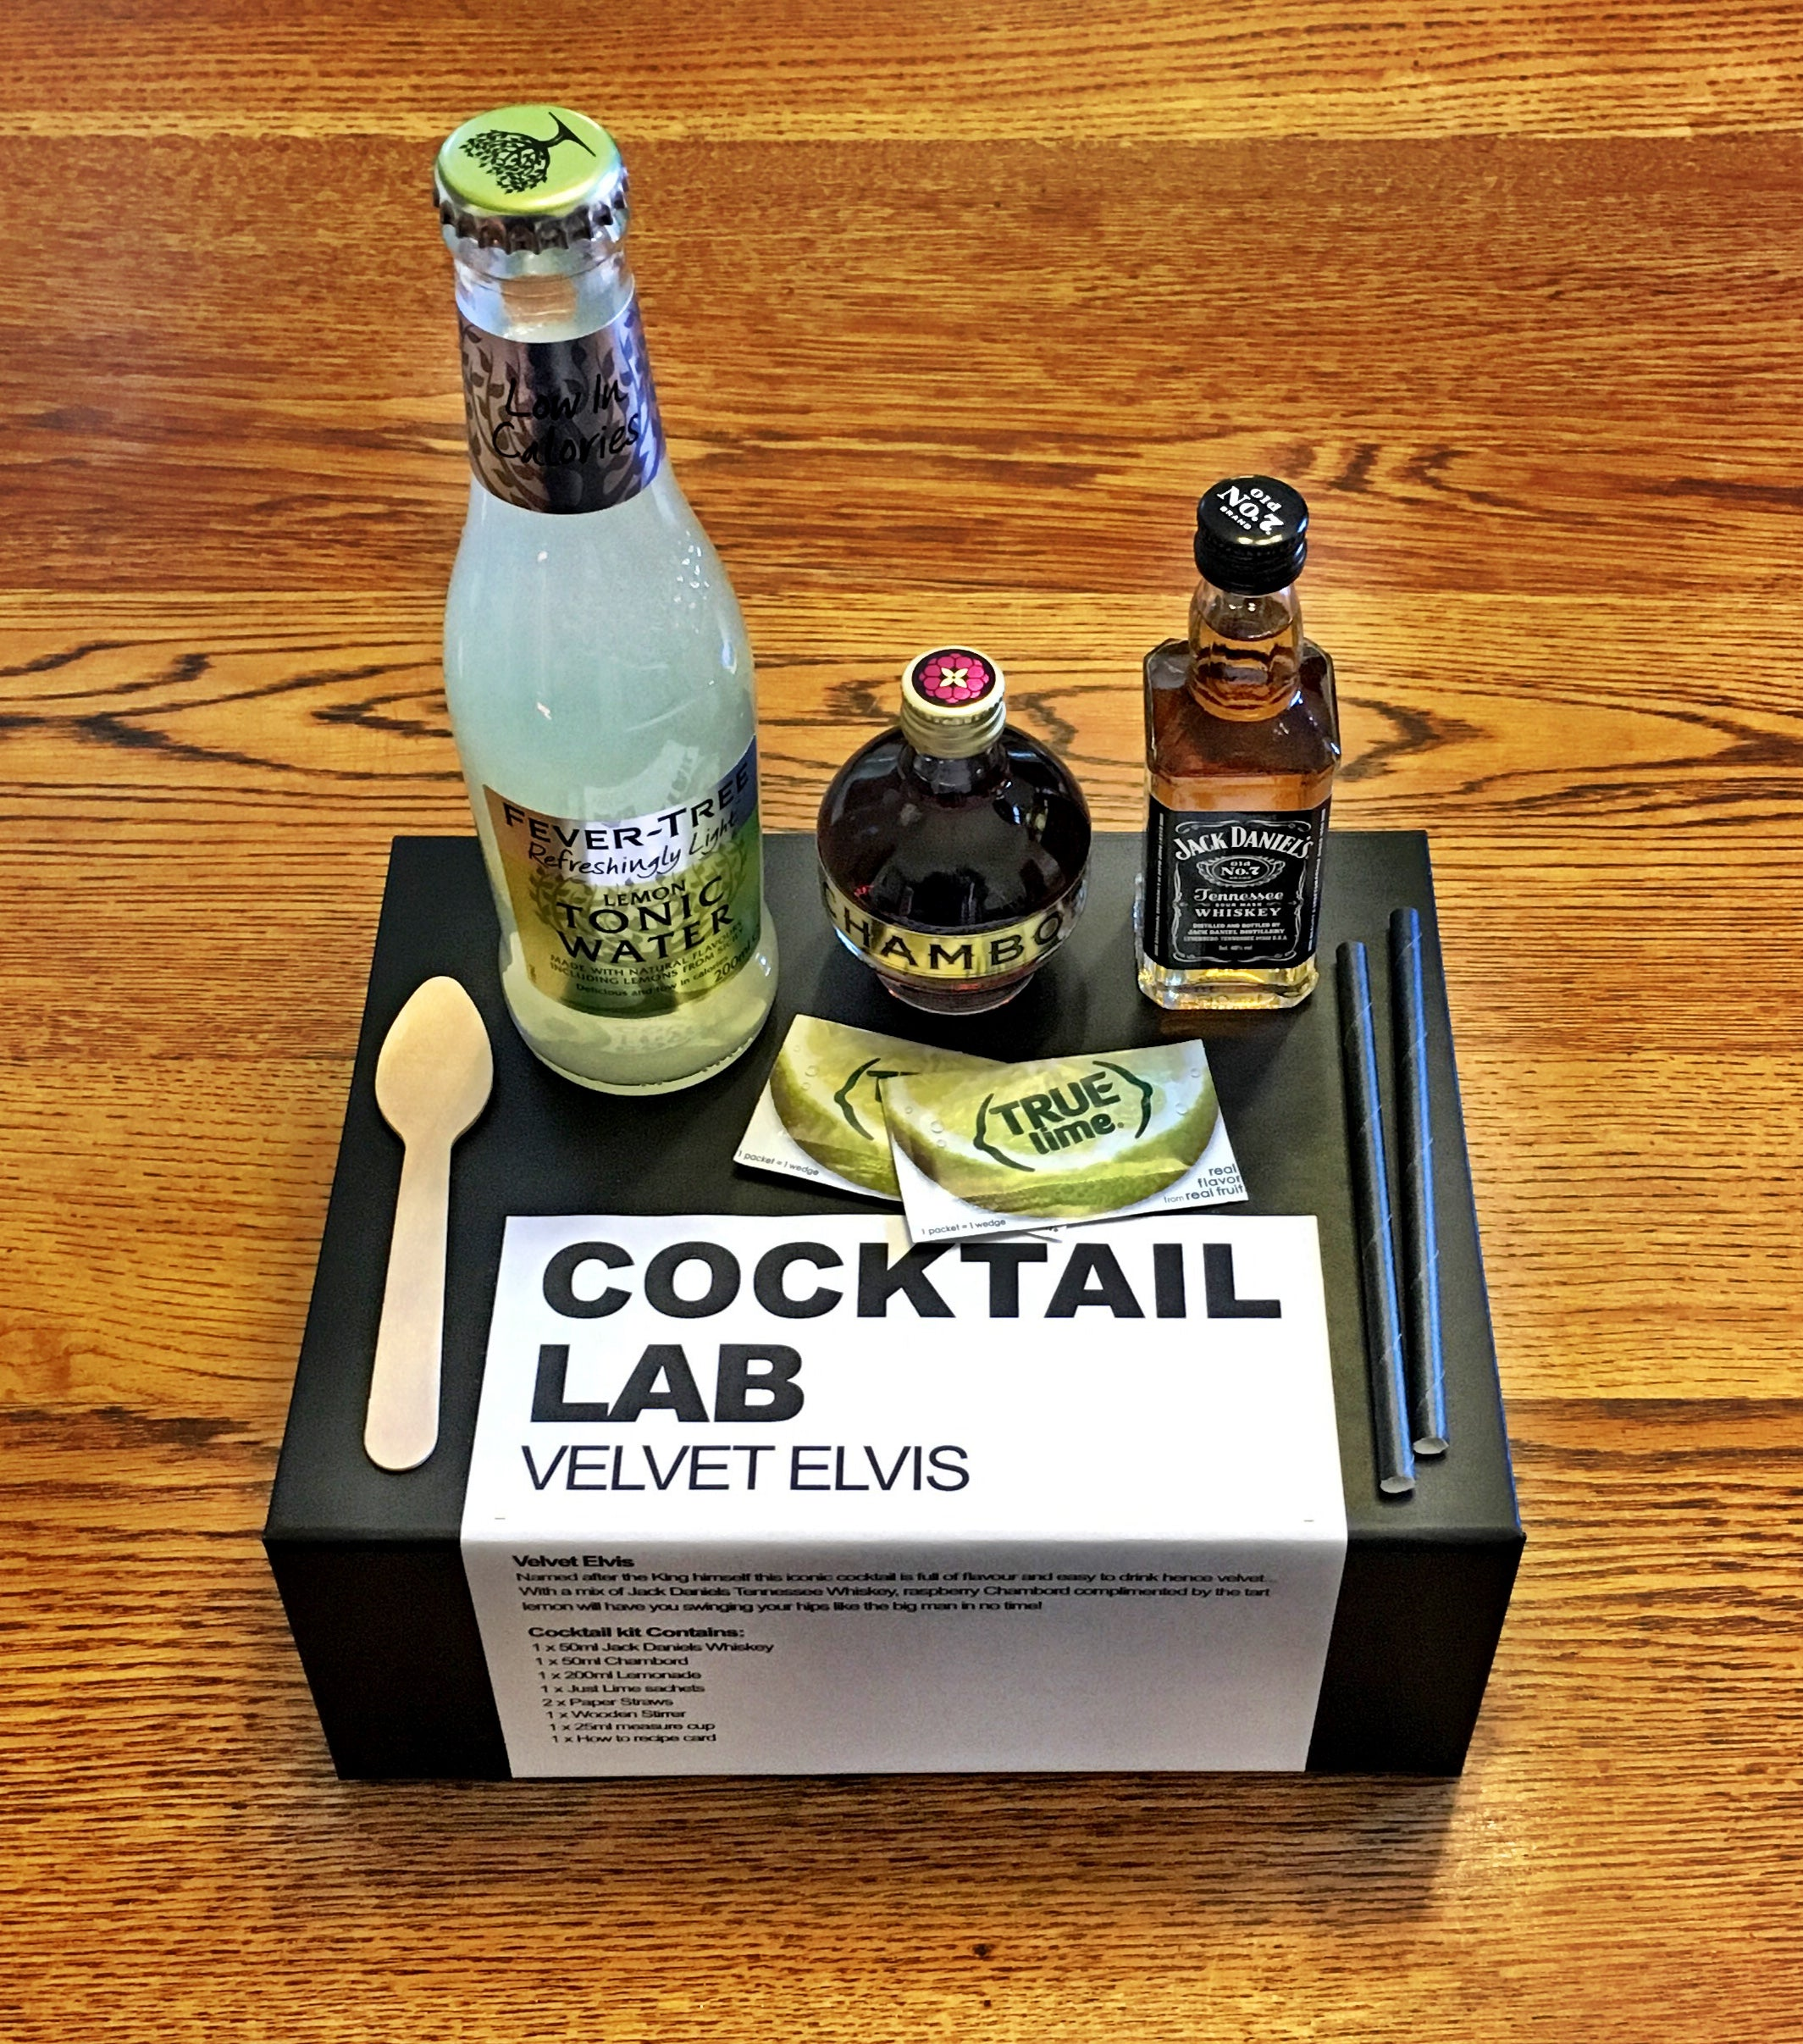 Velvet Elvis Cocktail Kit Box